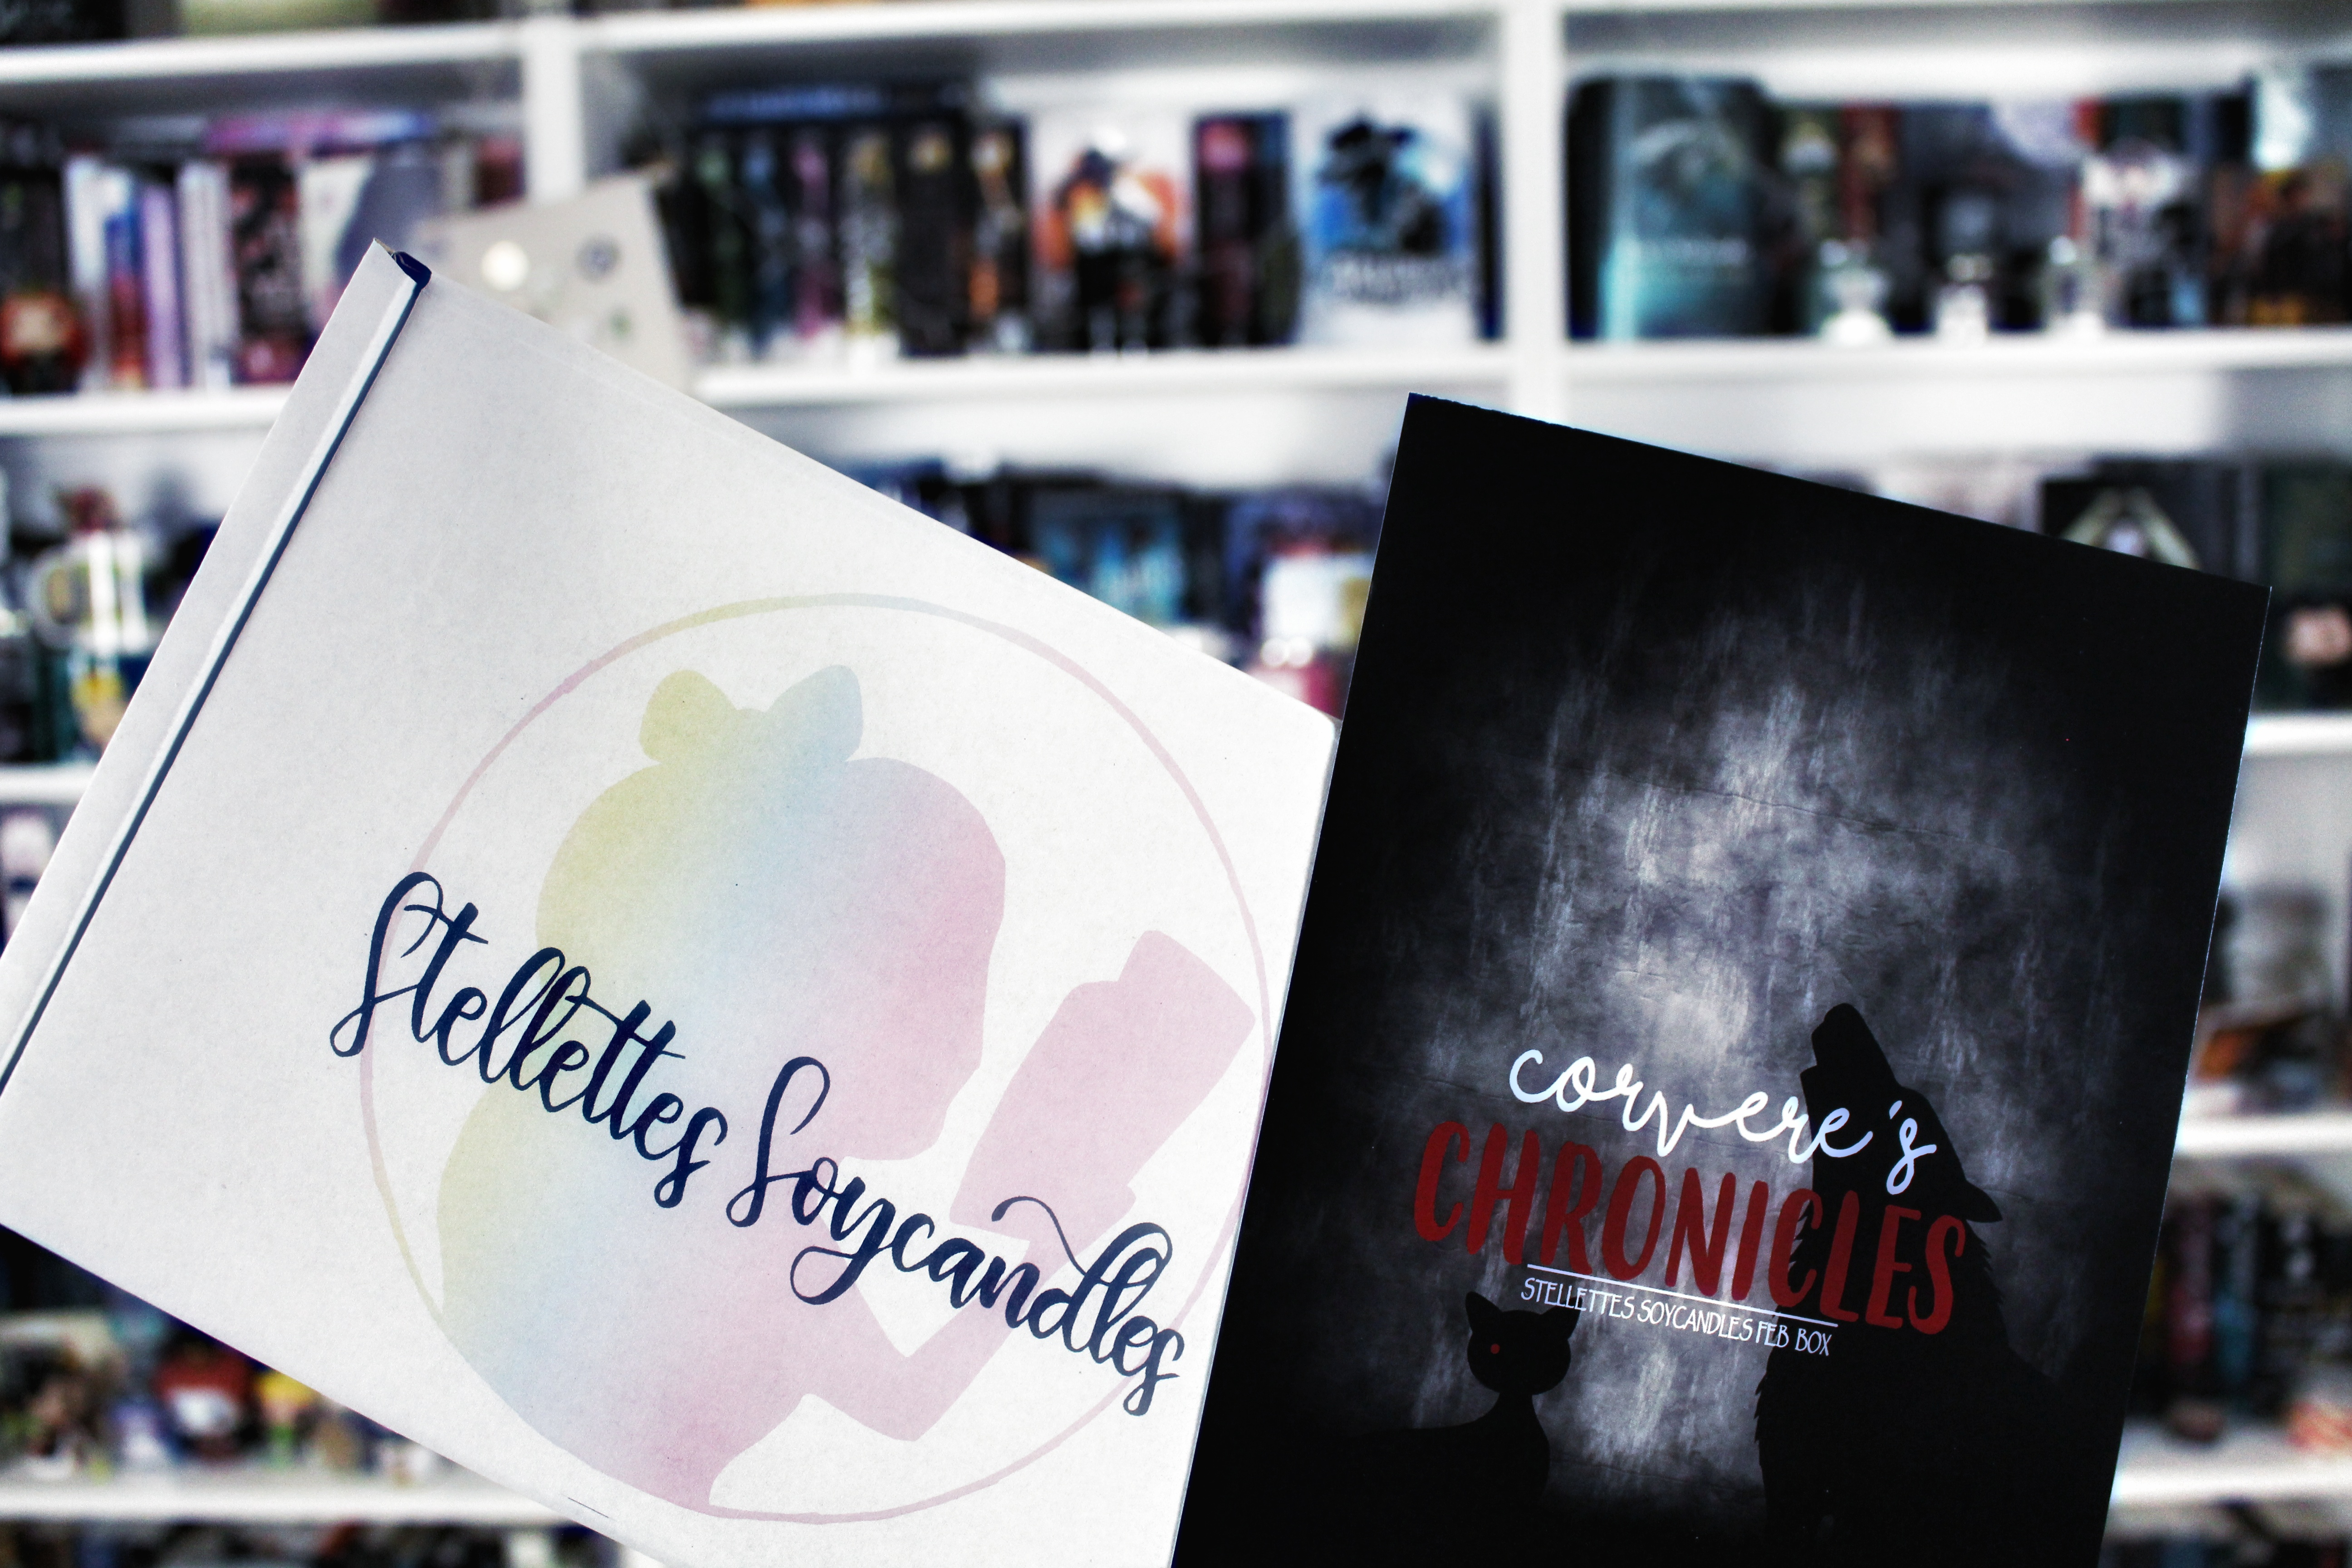 Unpacking: [Stellettes Soycandles] Candlebox – Corvere's Chronicles